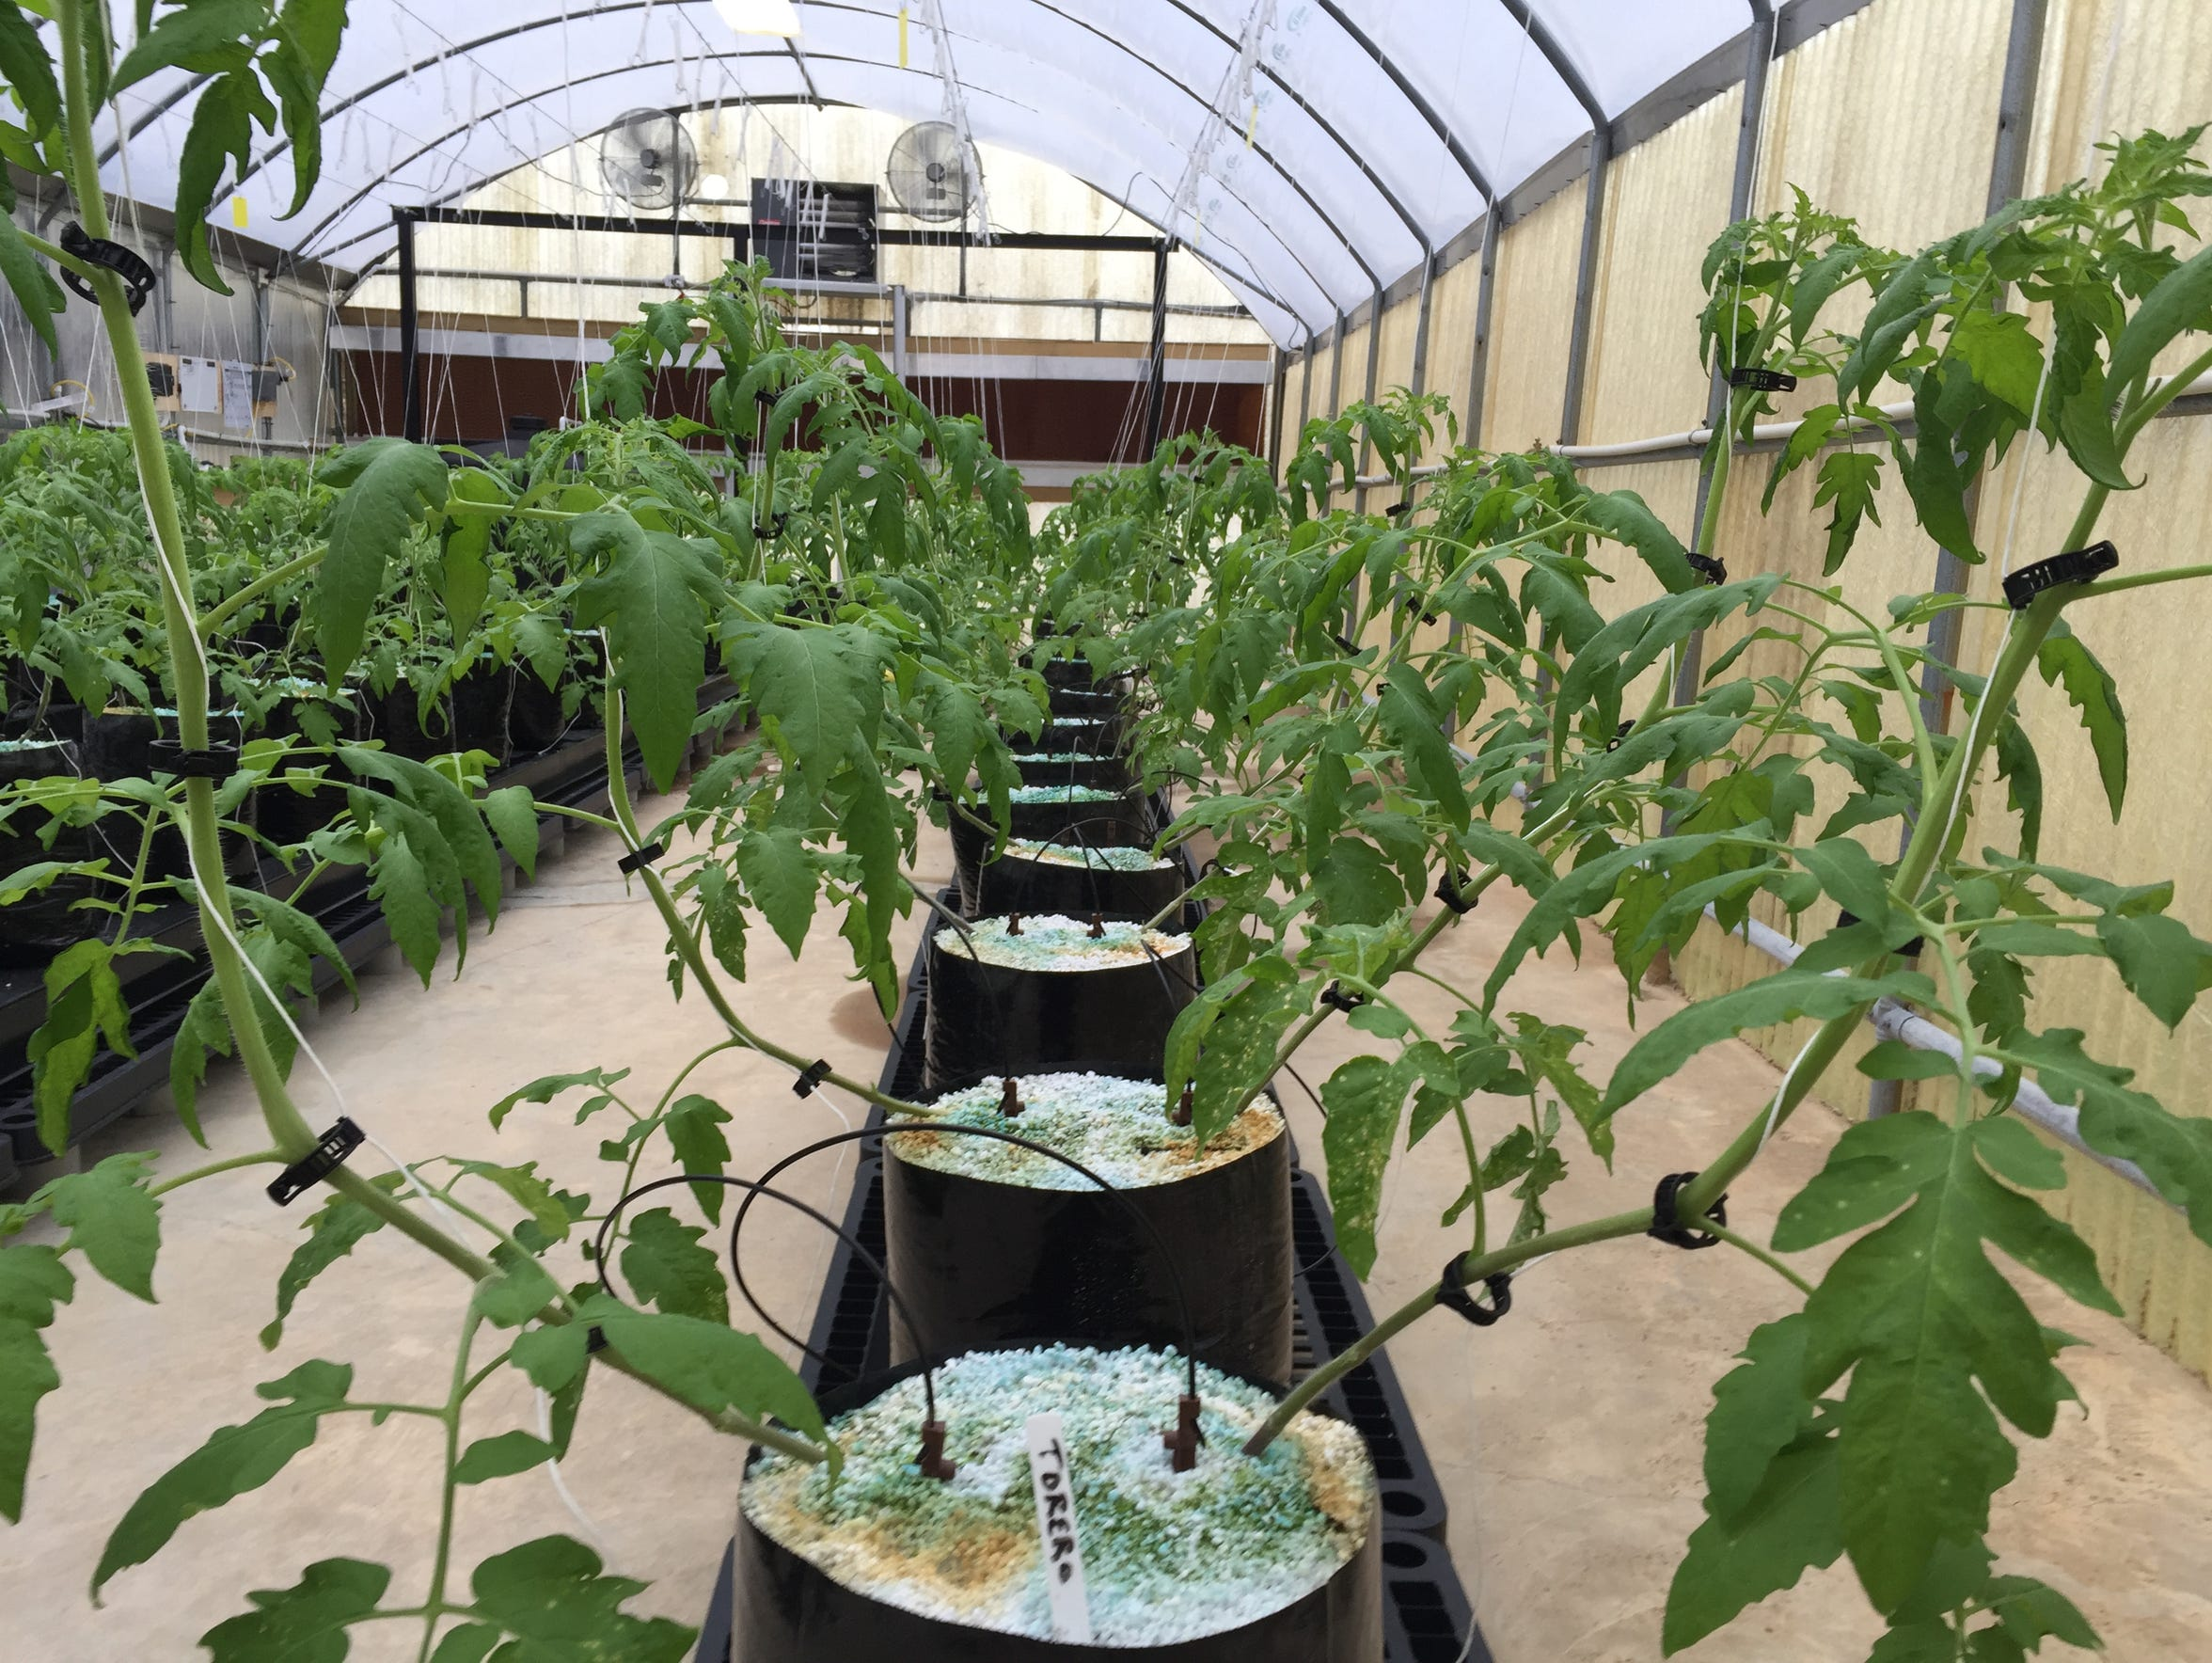 Tomato plants grow in perlite as part of the Richland